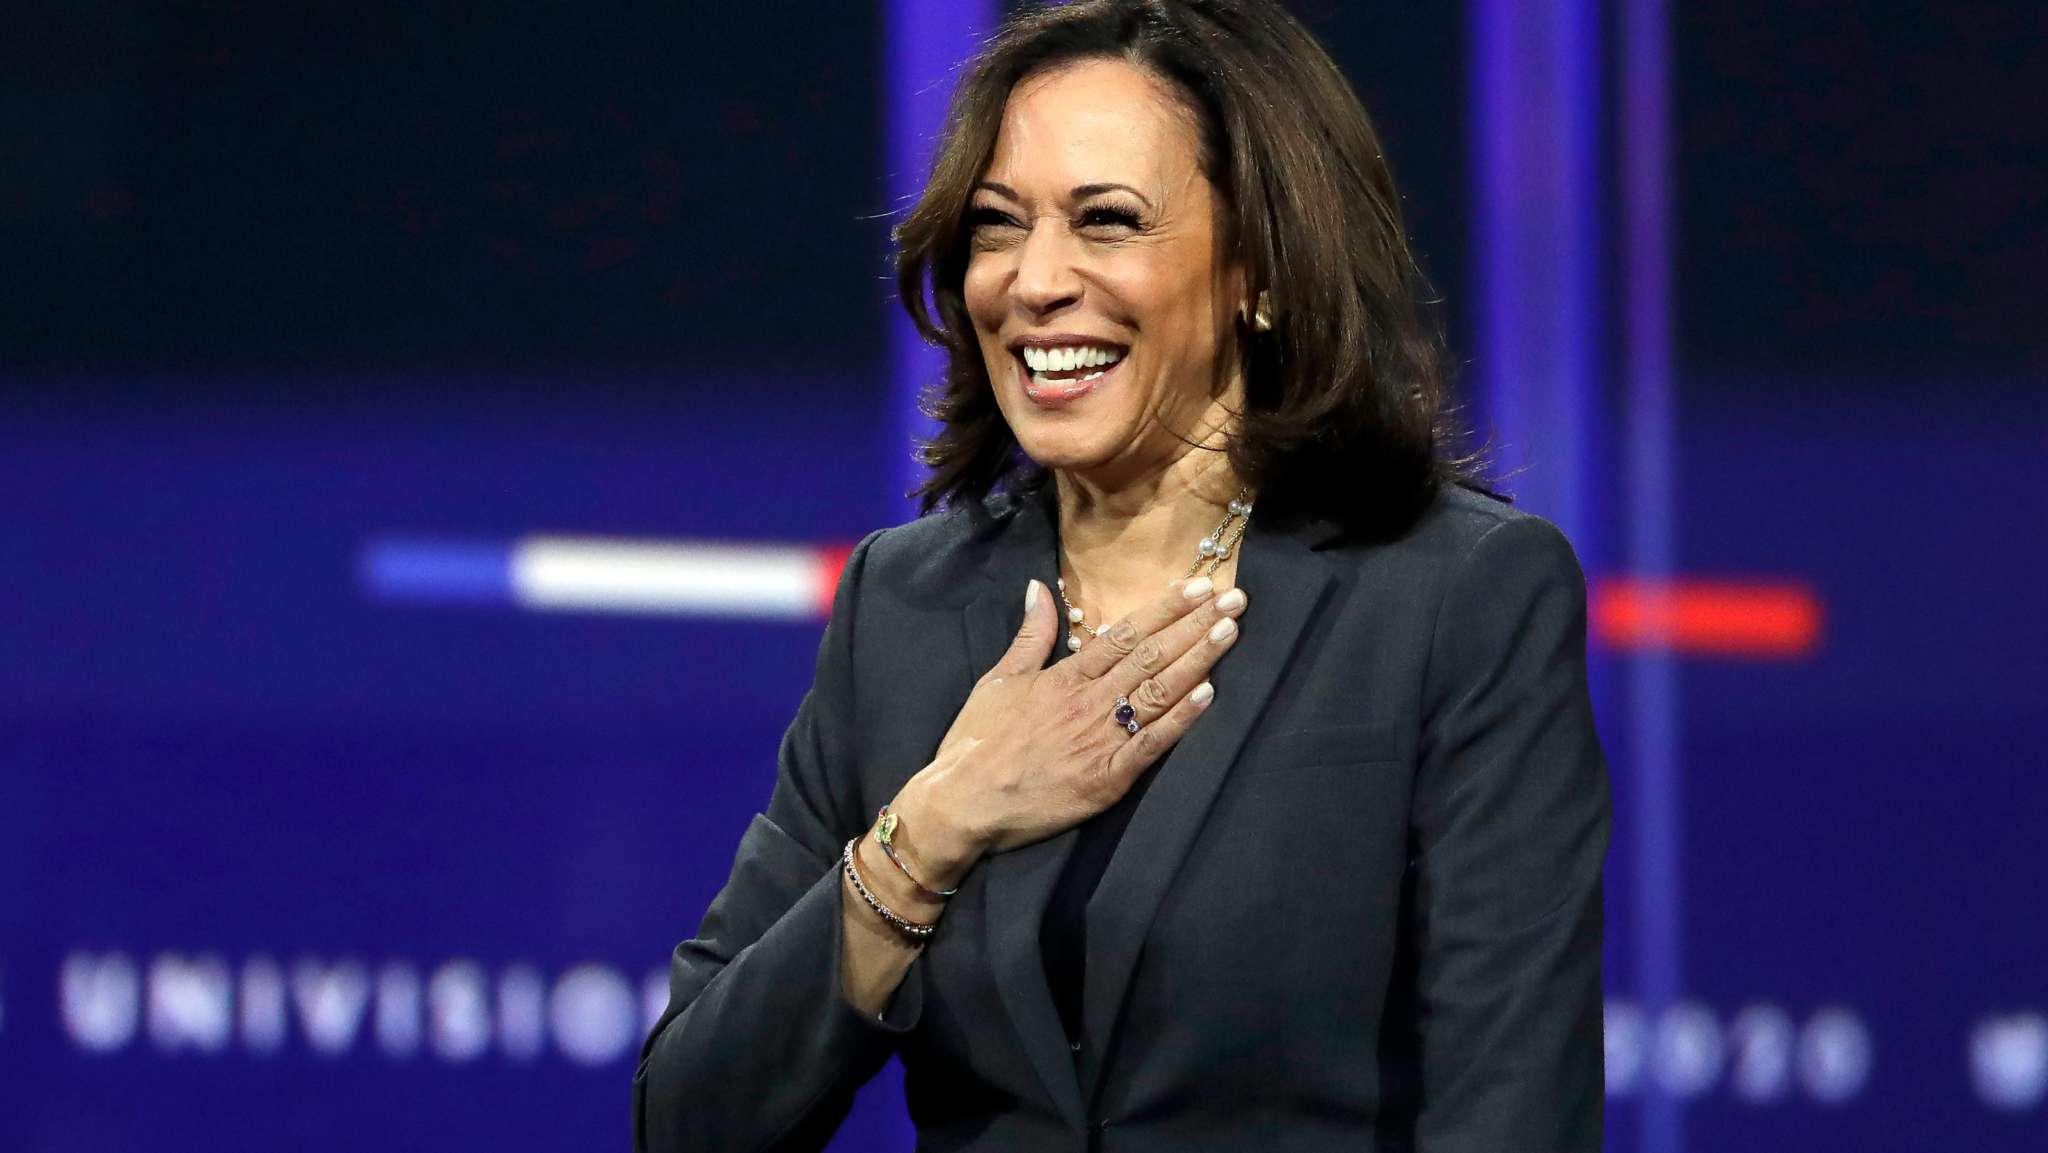 """kamala-harris-tells-fans-to-tune-in-for-an-election-protection-briefing-now"""